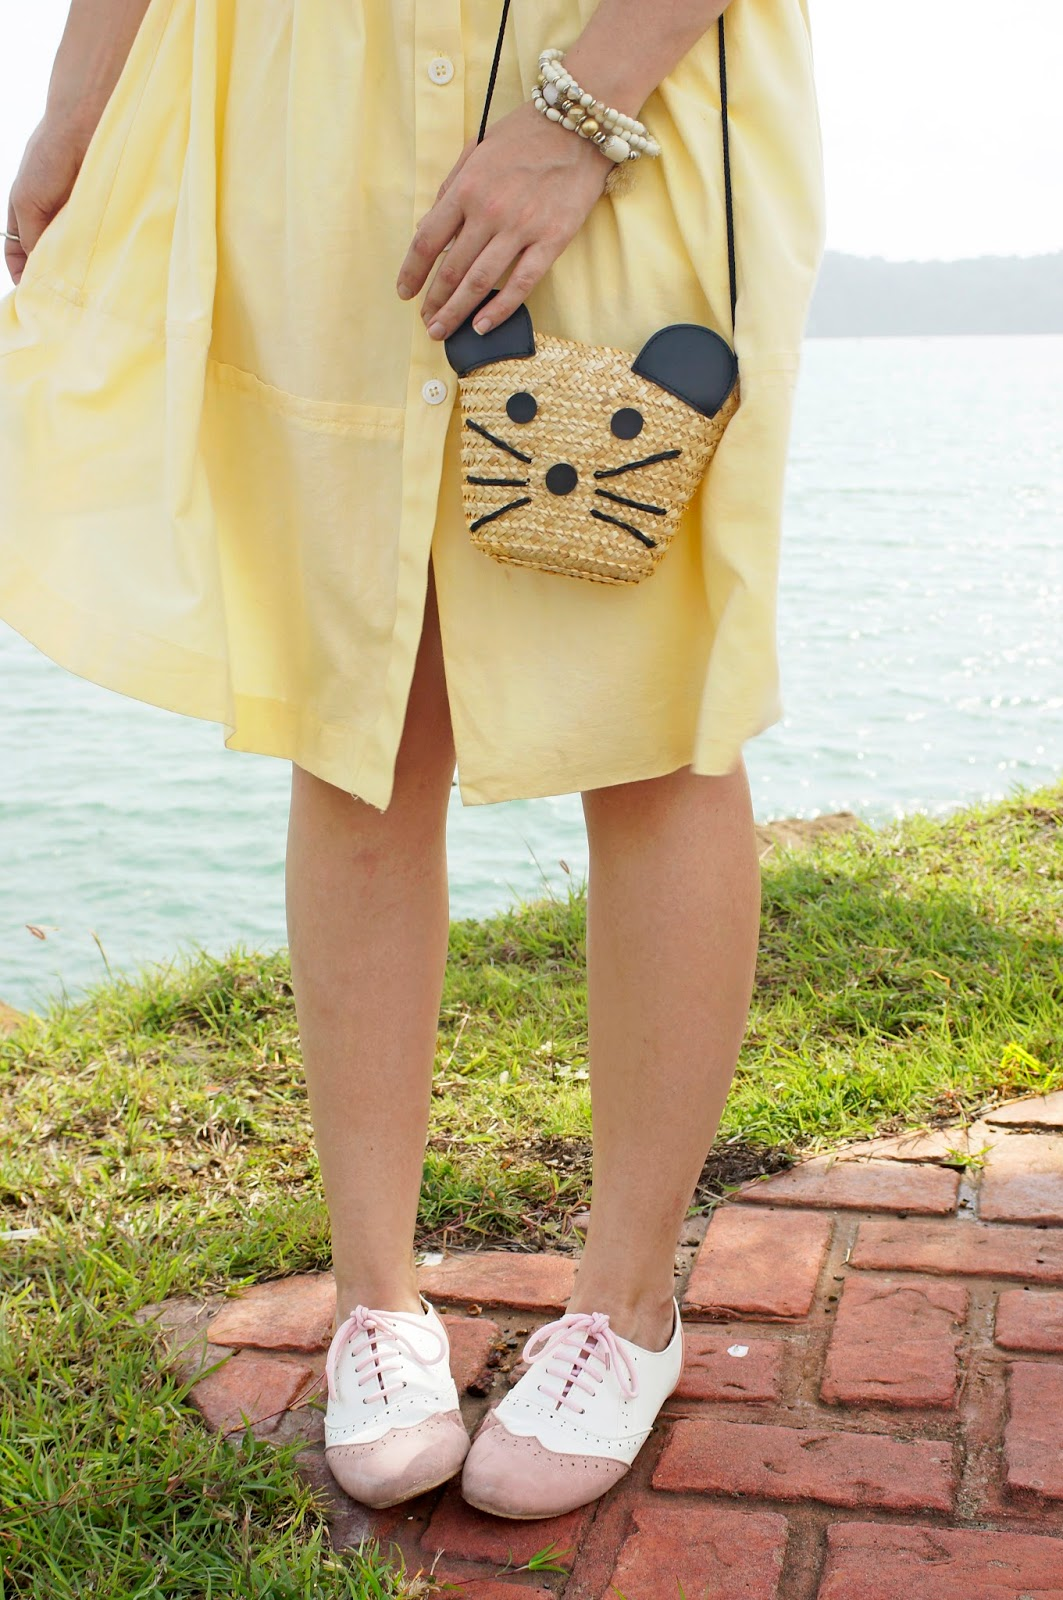 Loving these cute pink oxfords and mouse bag! Adorable!